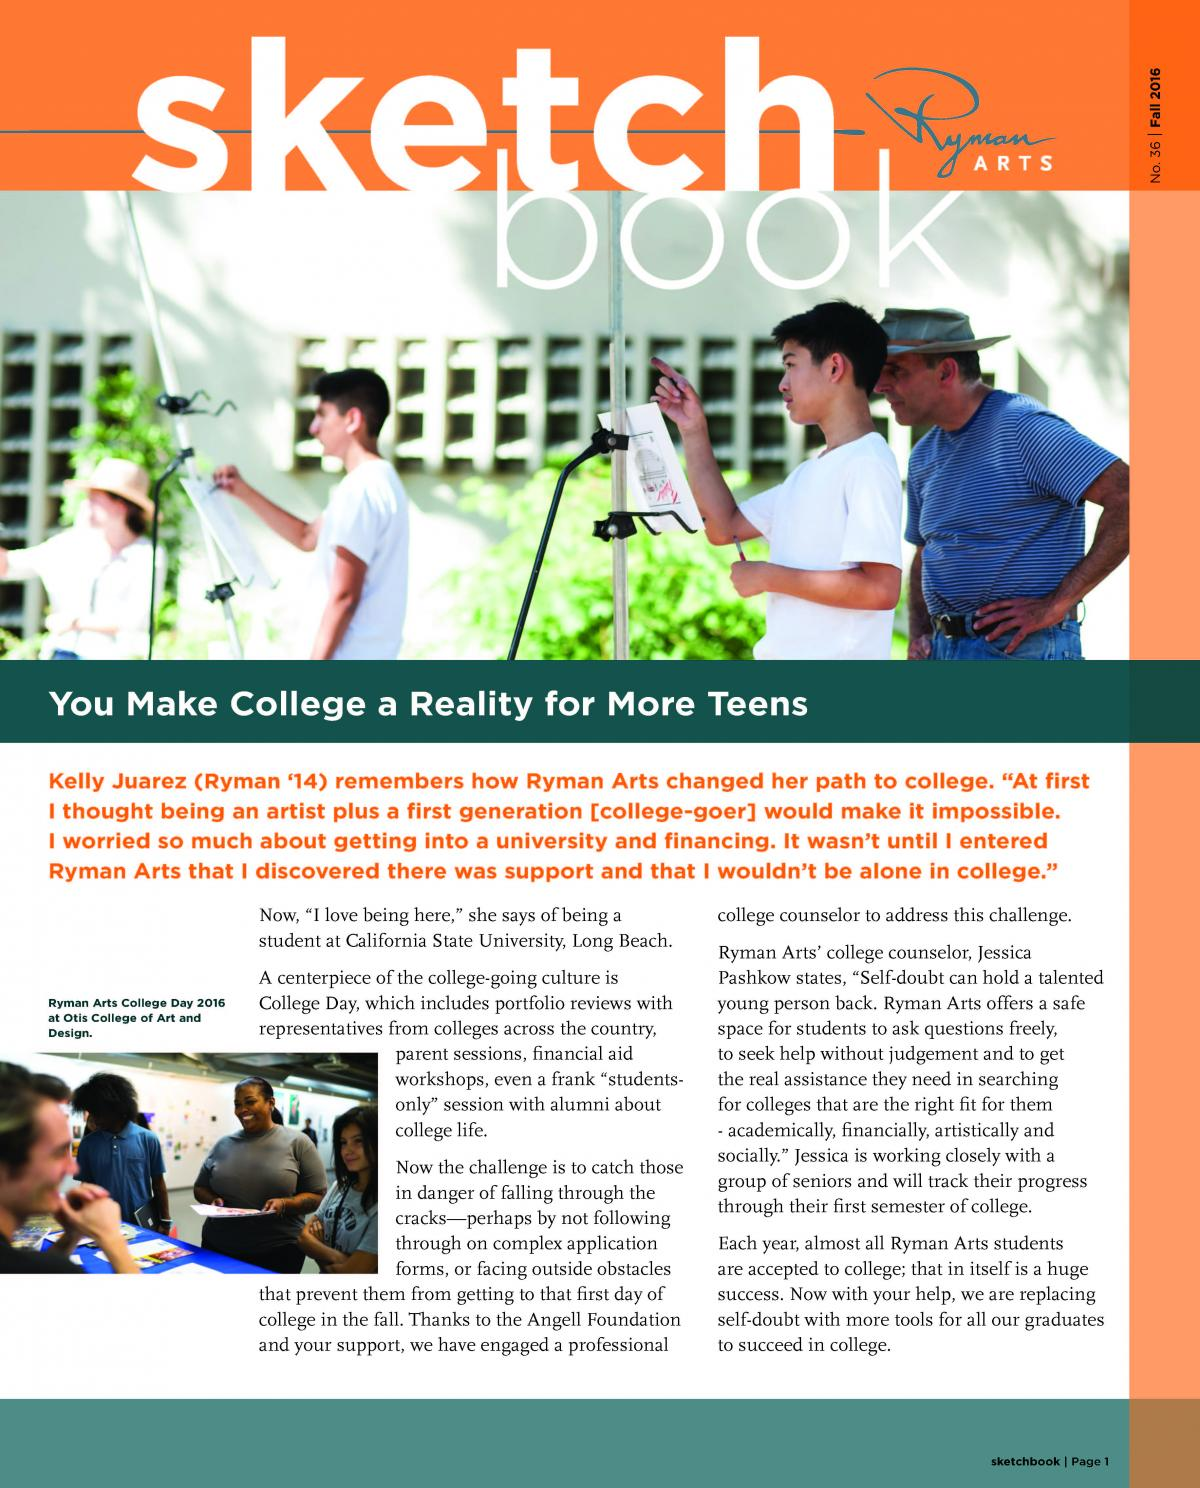 Ryman Arts Sketchbook Number 36, Spring 2016: You Make College a Reality for More Teens